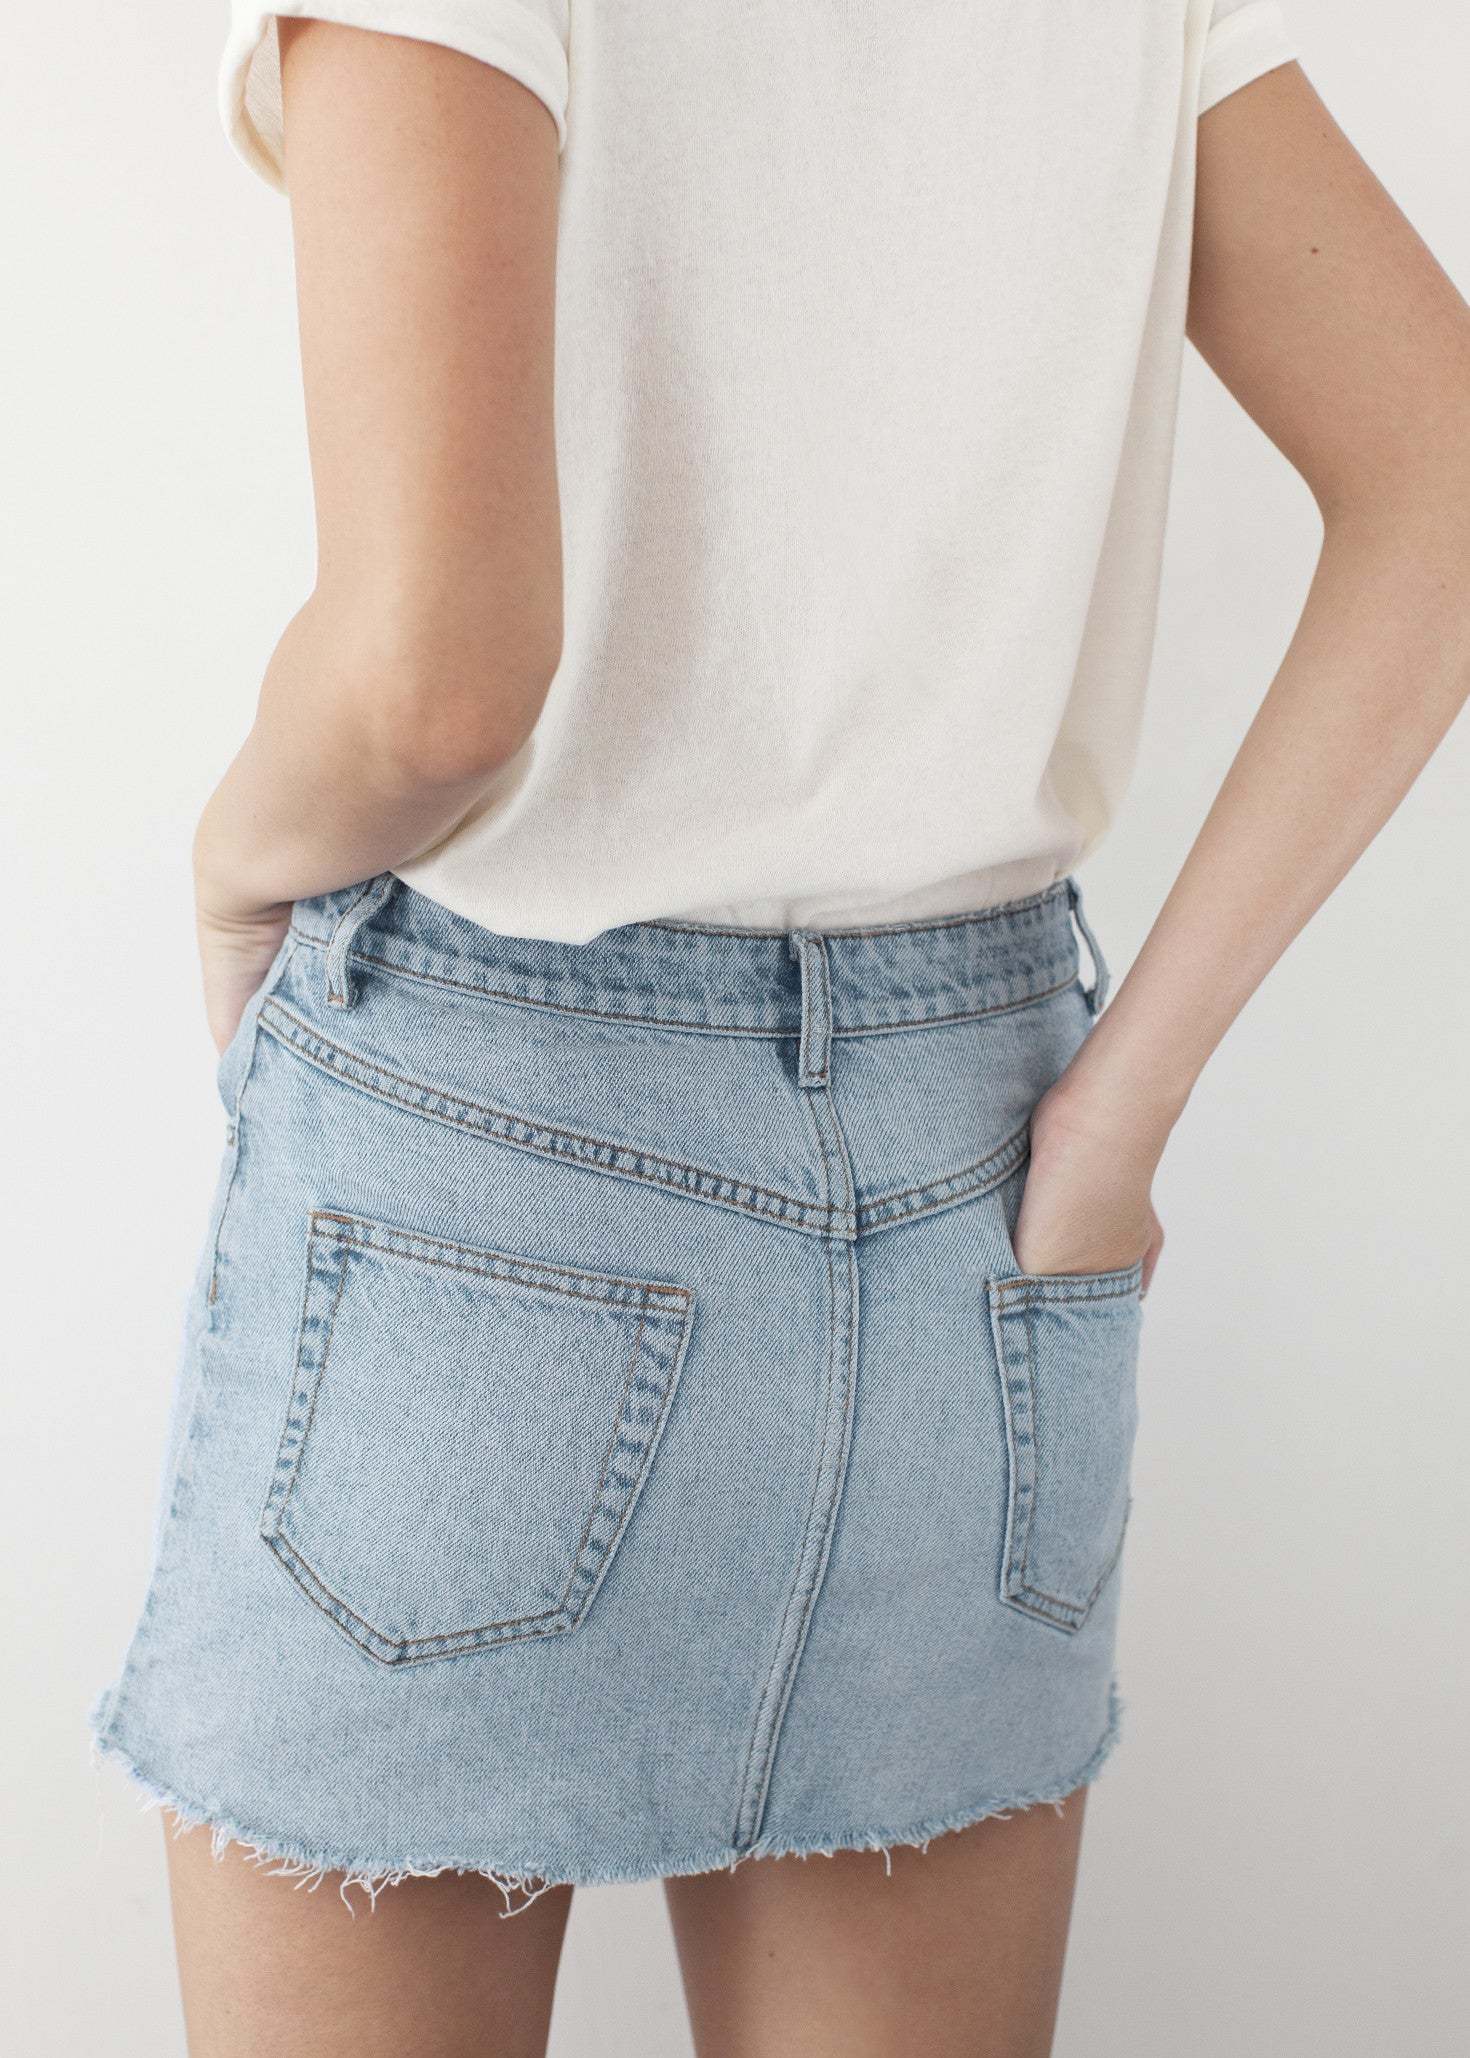 DIXIE DENIM SKIRT